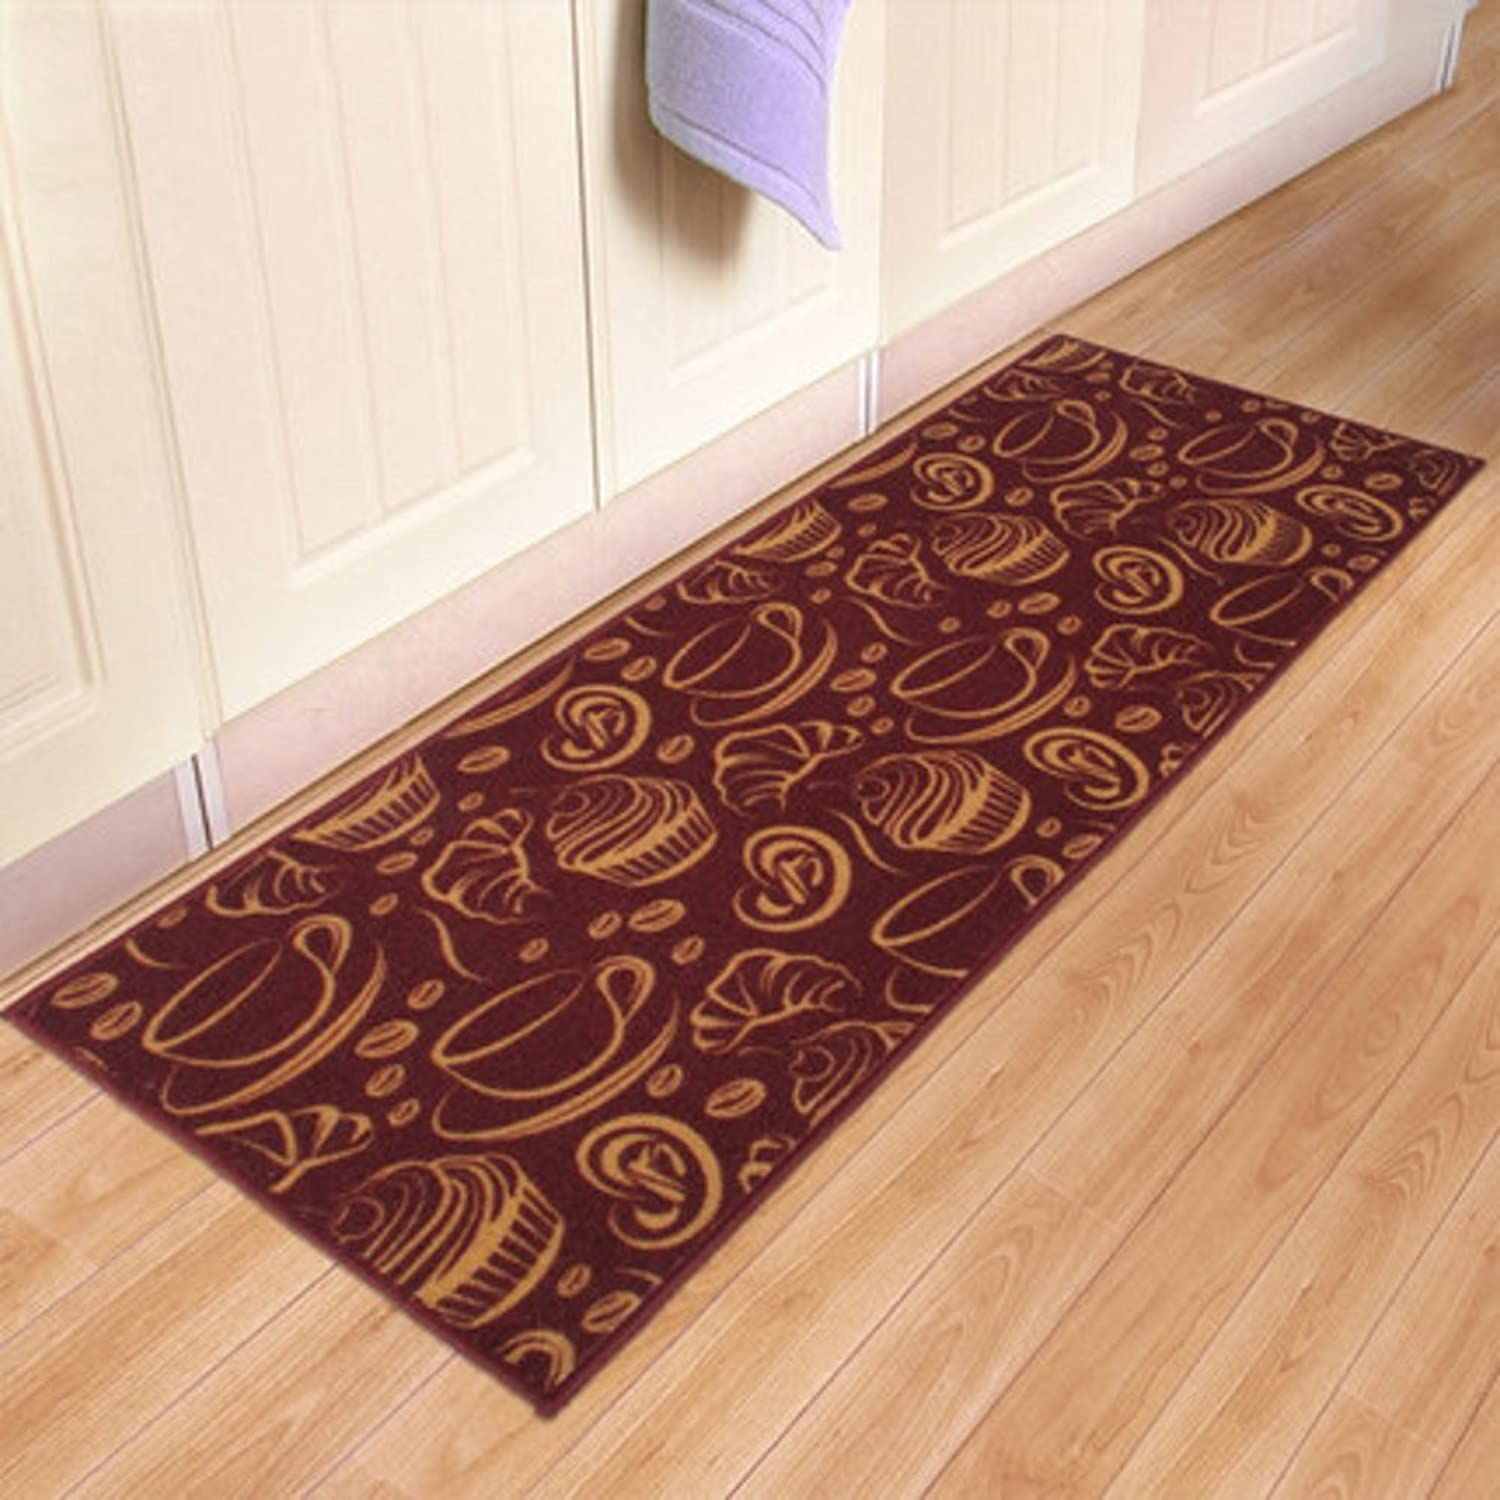 Kitchen Floor mats Strip pad Bedside Hall Hallway Bathroom mat-A 45x240cm(18x94inch)